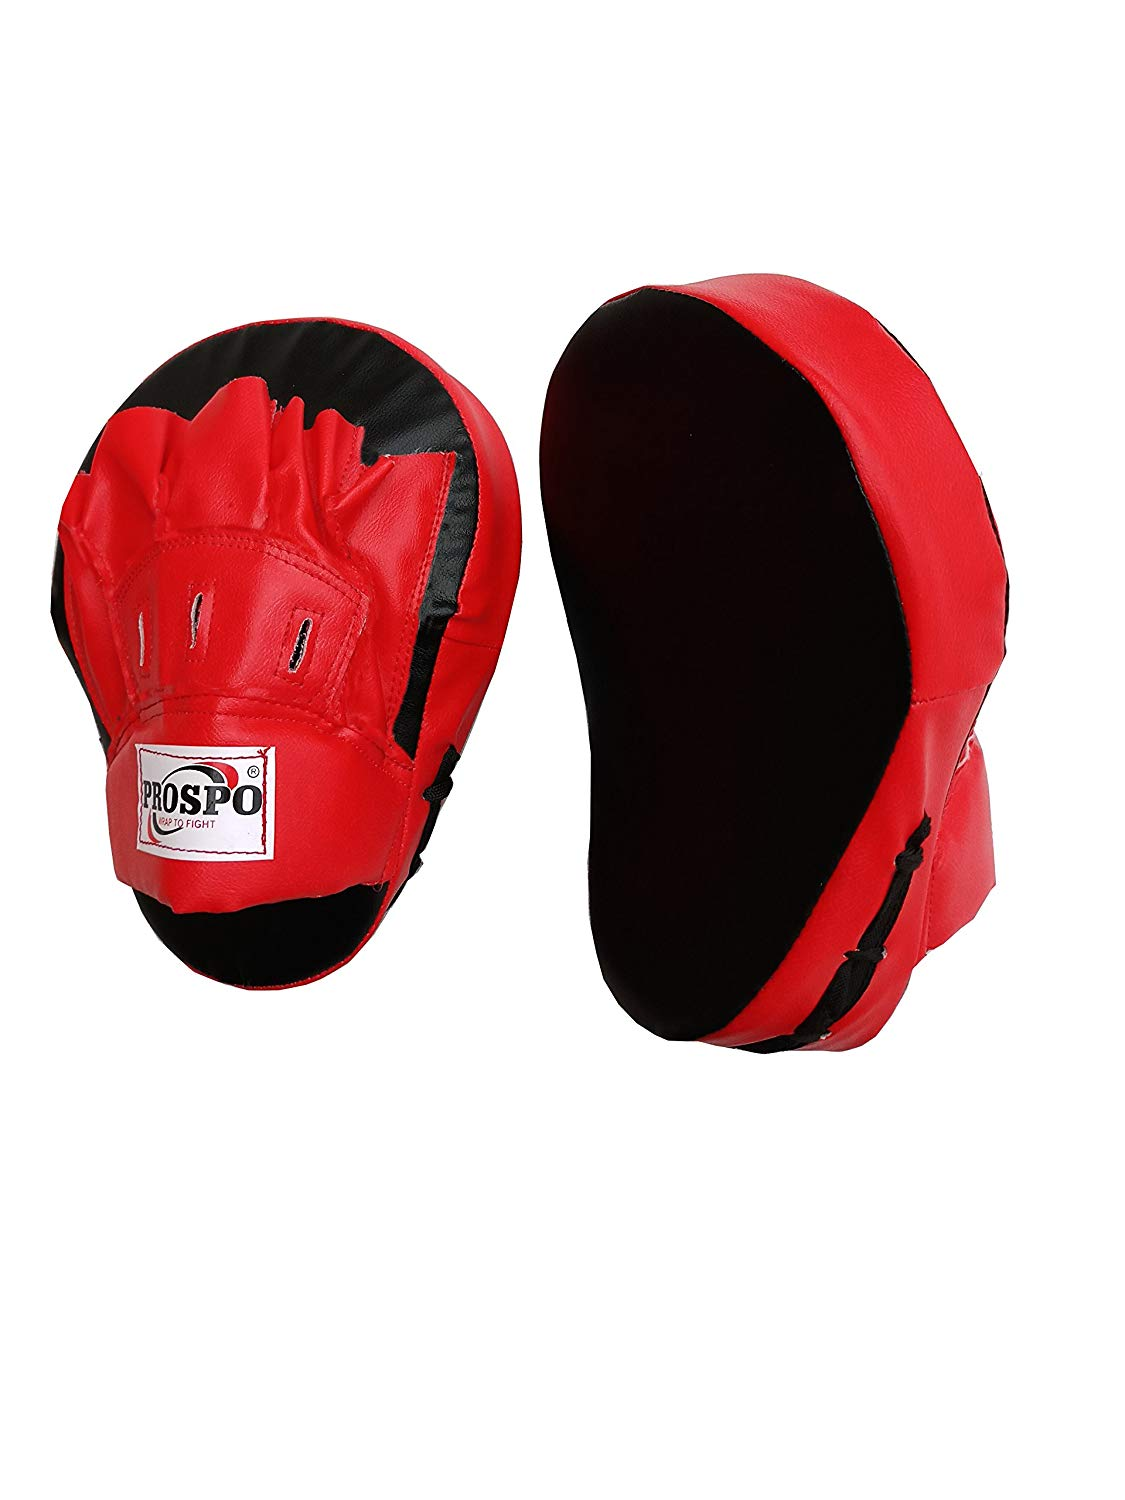 prospo focus pad curved  boxing puching pad